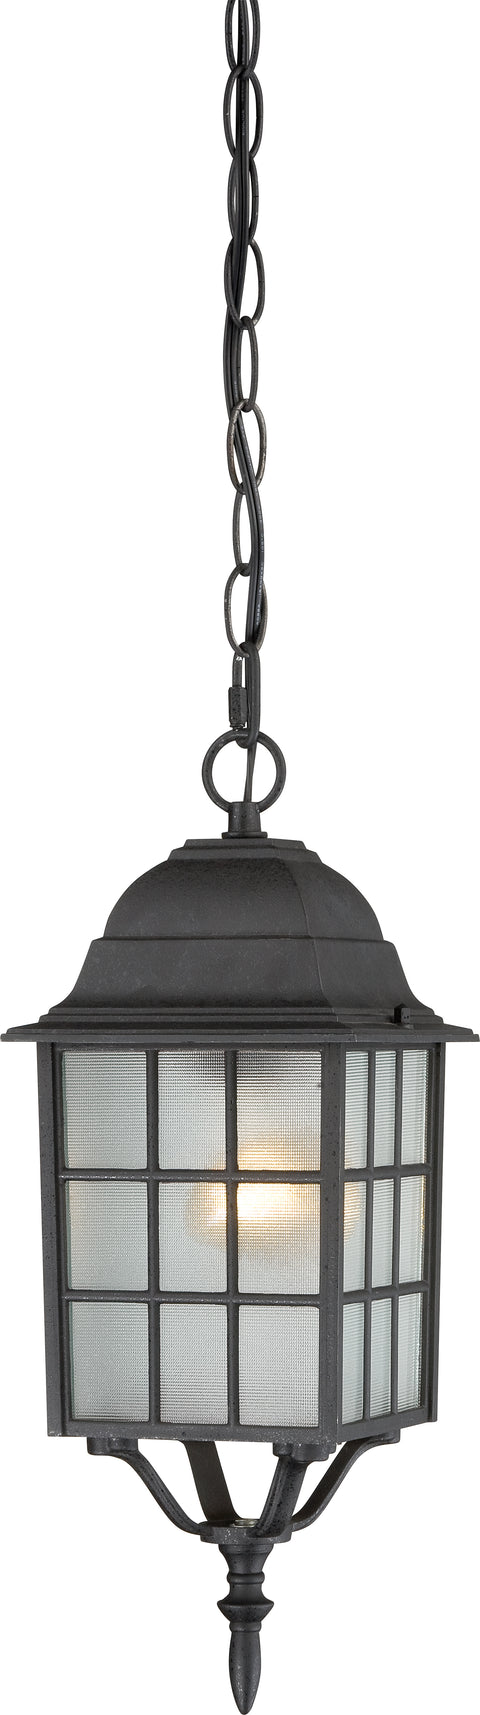 Nuvo Lighting 60/4913 Adams 1 Light 16 Inch Outdoor Hanging with Frosted Glass